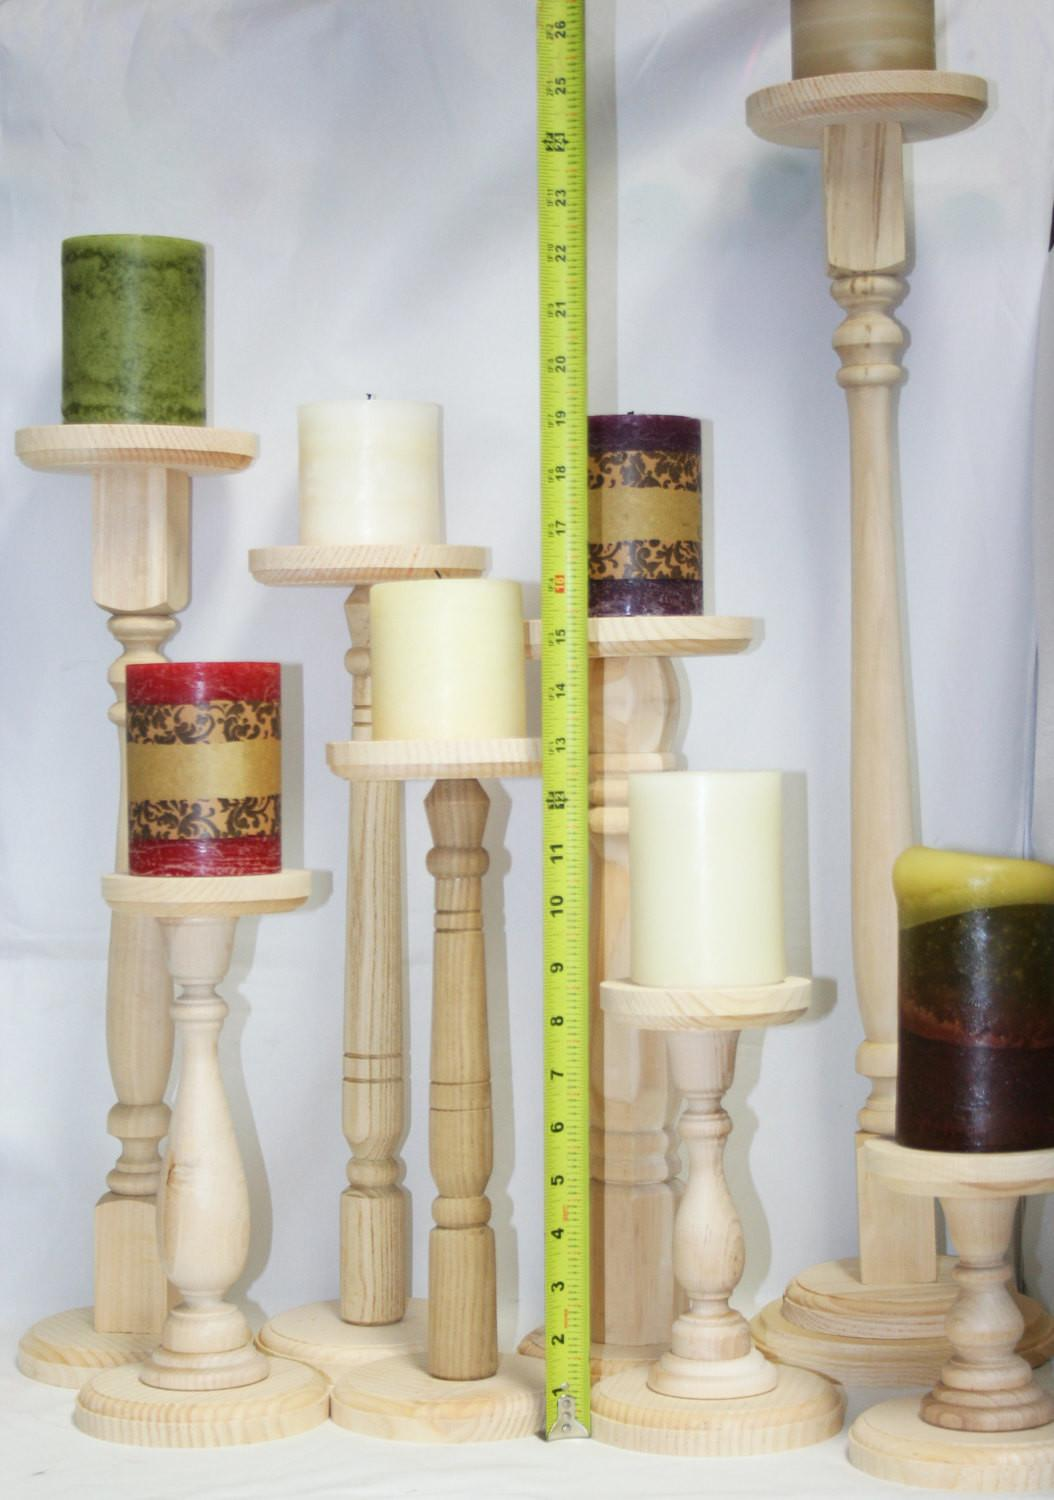 Extra Tall Unfinished Wood Pillar Candlestick Holders